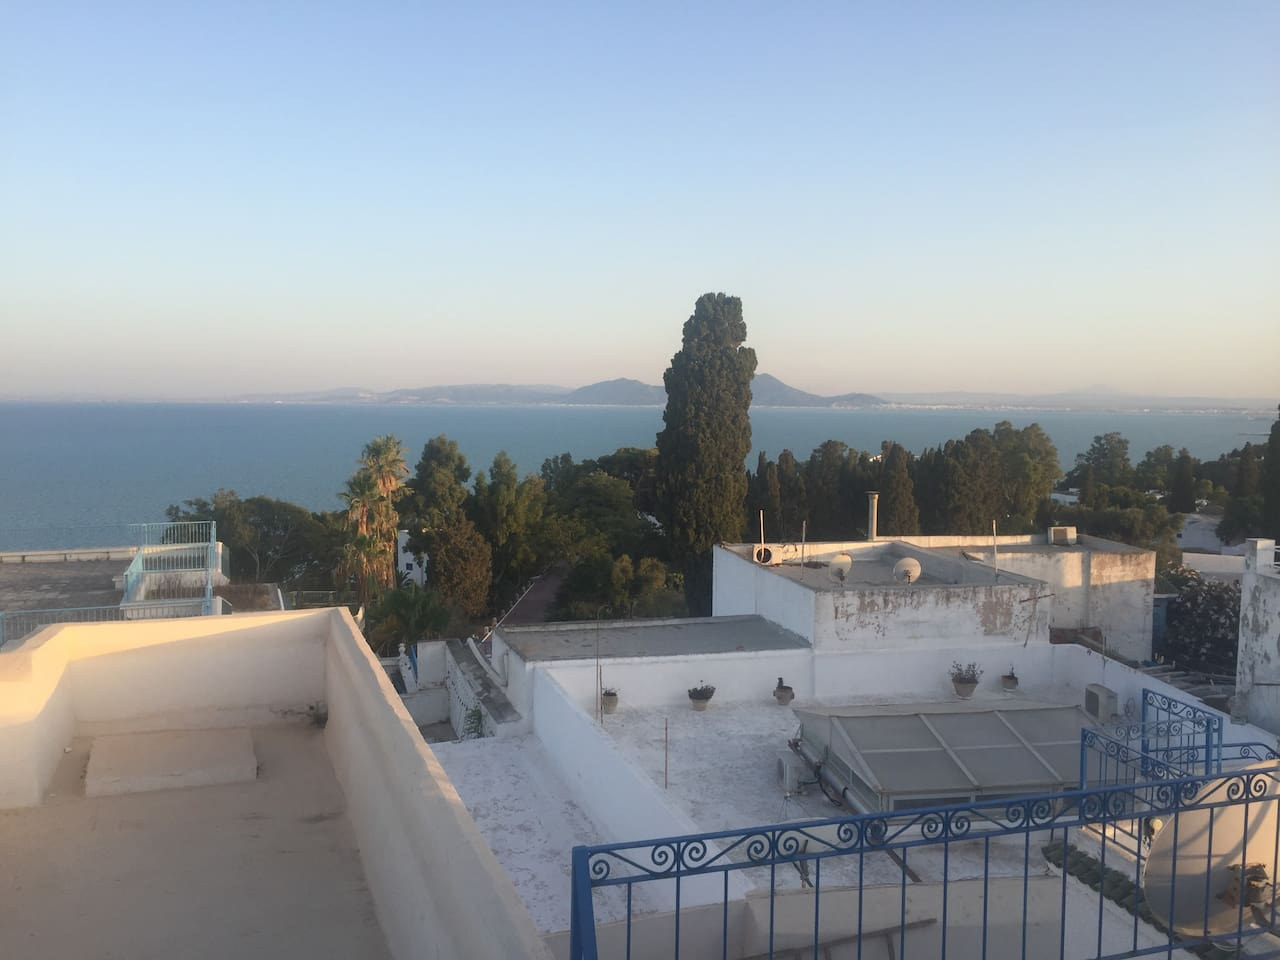 View from Upper Terrace of the Bay of Tunis